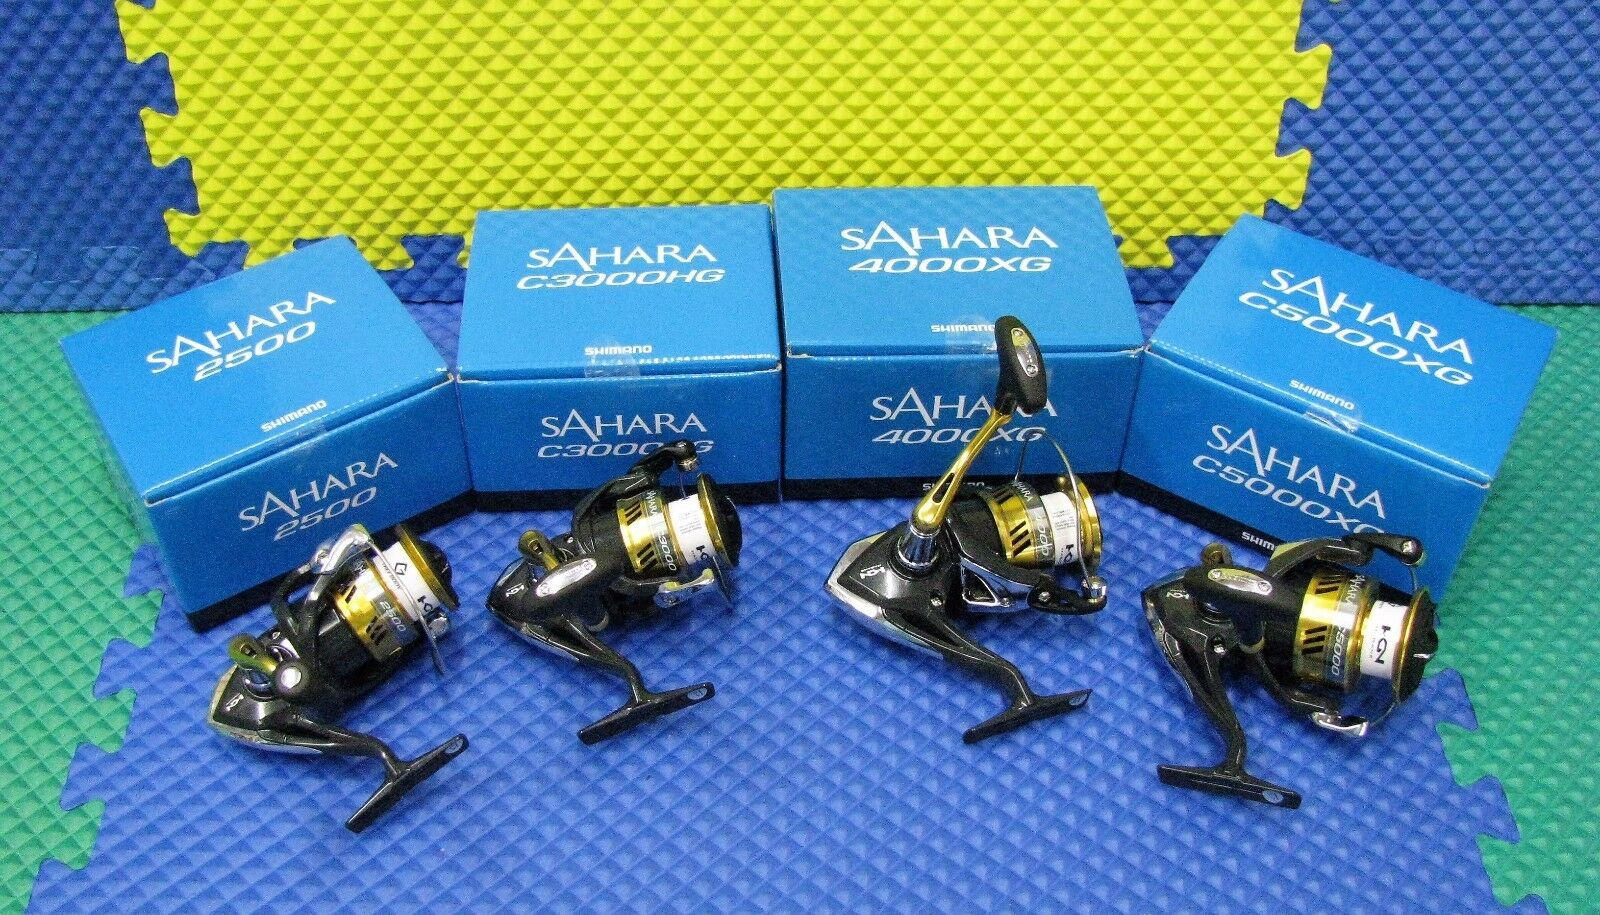 Shimano Sahara  Spinning Reels NEW FI Series bluee Box CHOOSE YOUR MODEL    lightning delivery